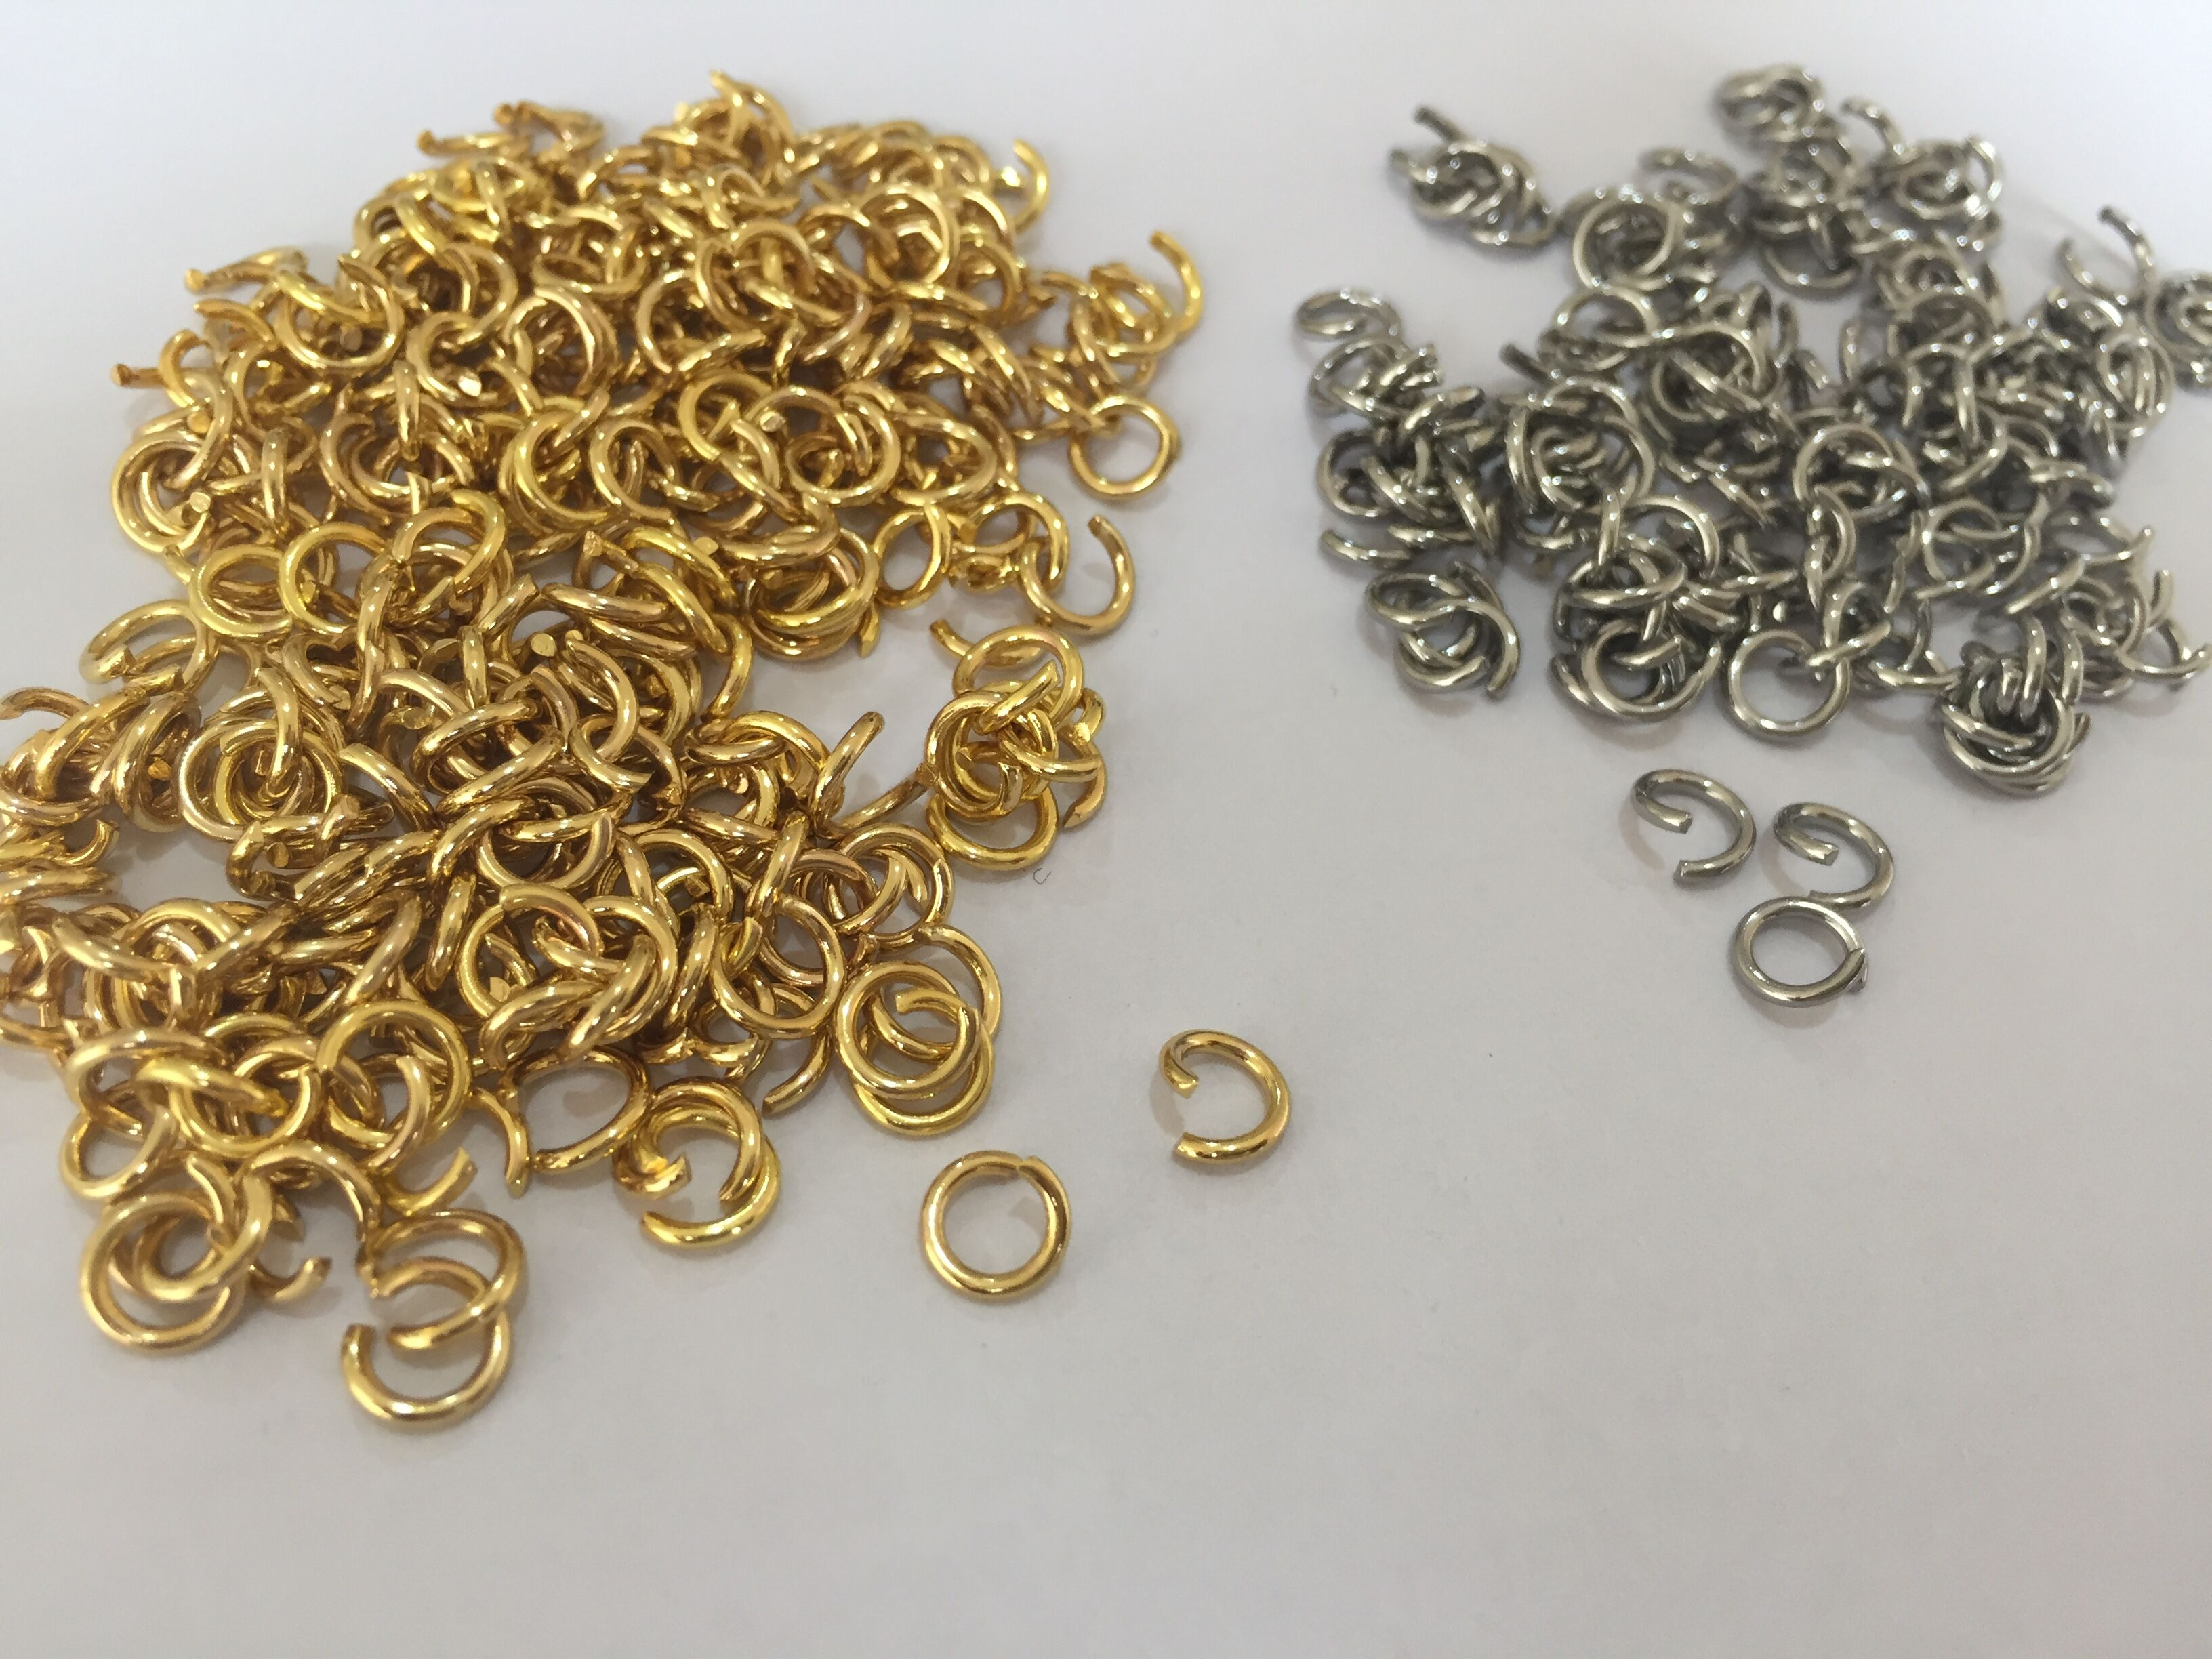 MYLONGINGCHARM 50pcs/lot Jump Rings Jewelry Hand Making Part Gold And Stainless Steel Color 1x6mm